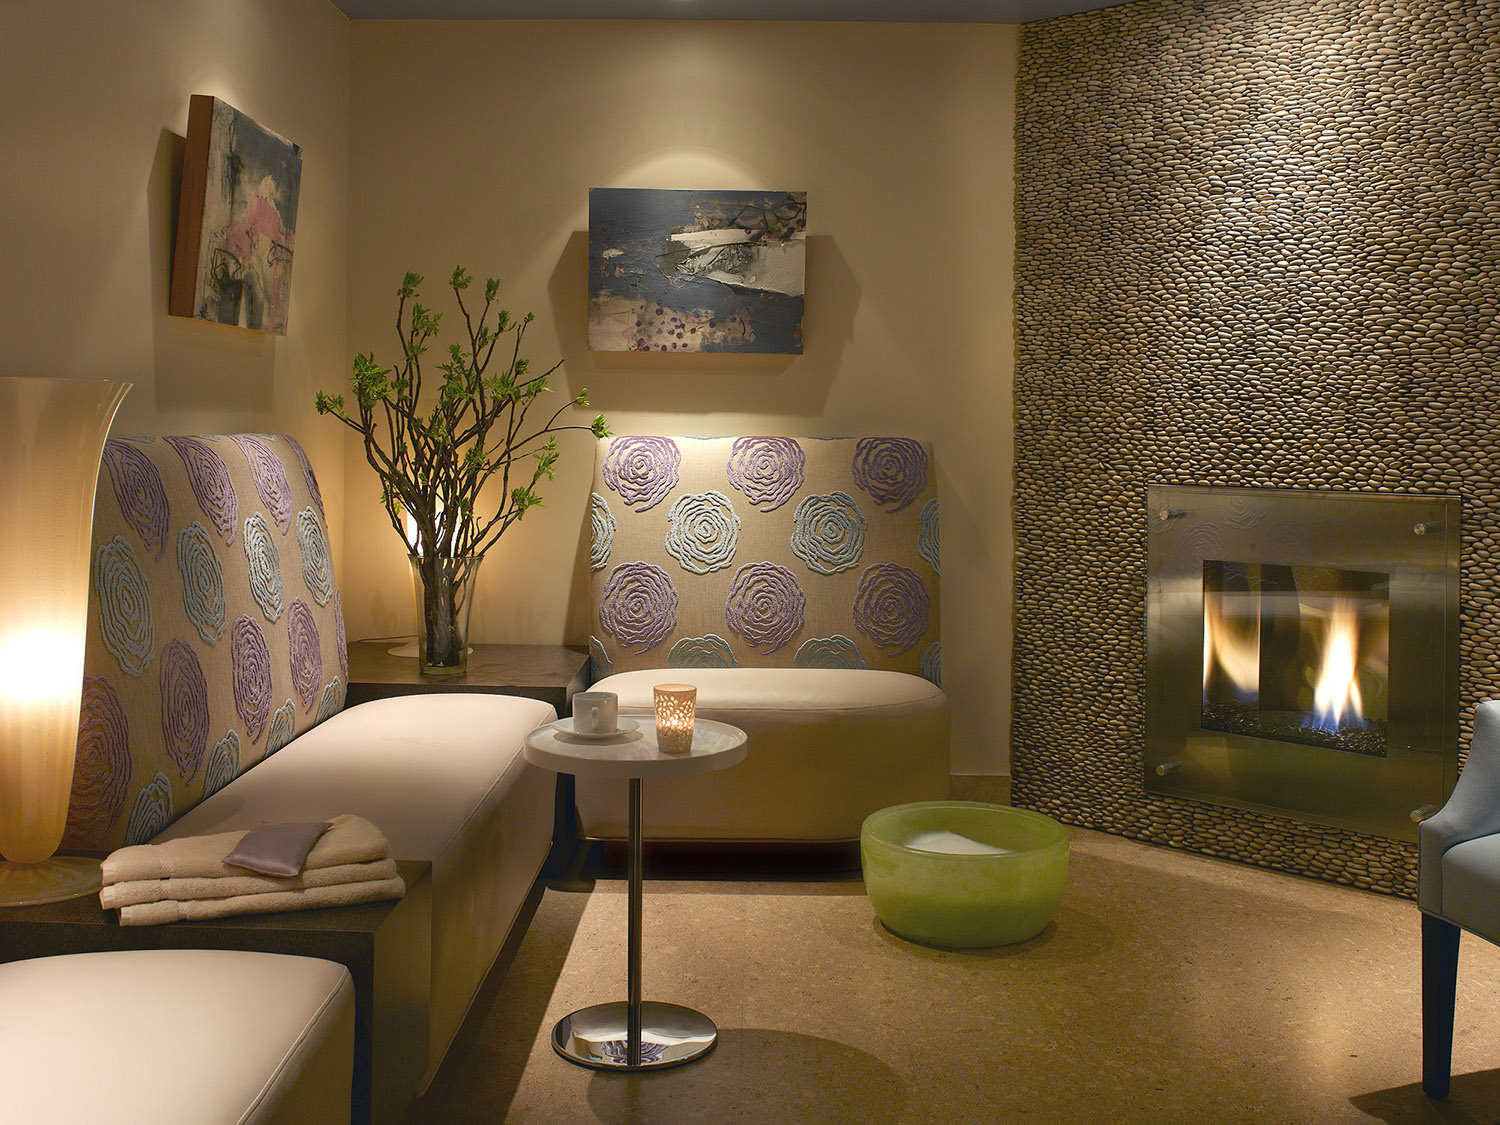 Guests can relax by the fireplace and enjoy a foot soak at both locations (Town & Country location pictured).